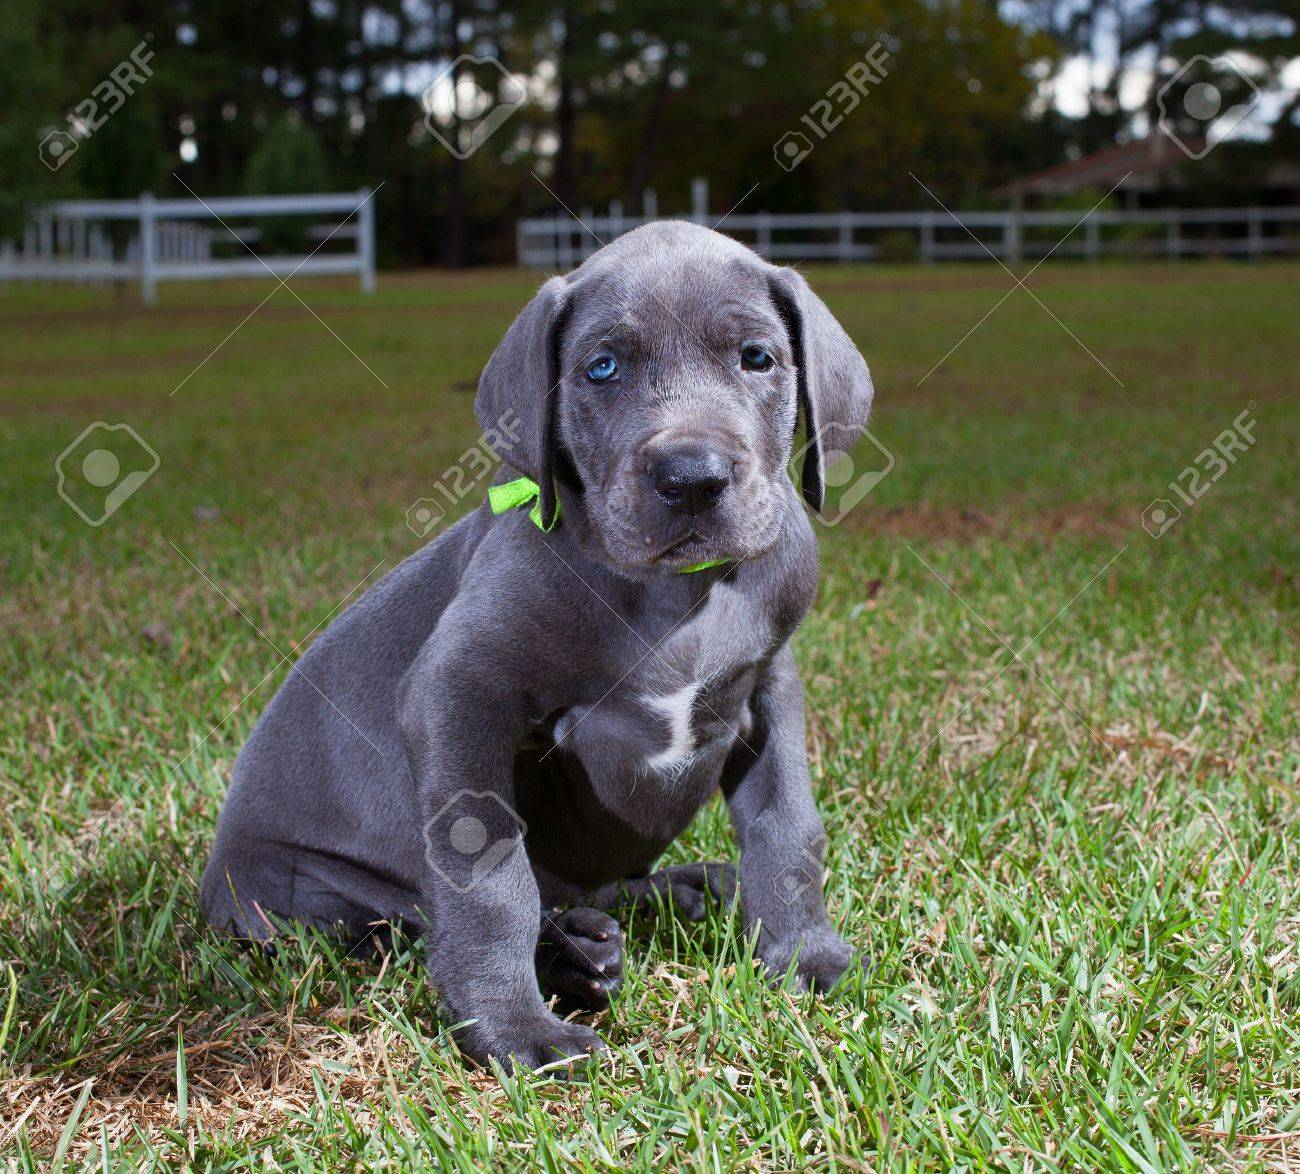 Great dane puppy with a bright green collar on the grass stock photo great dane puppy with a bright green collar on the grass stock photo 24728562 geenschuldenfo Image collections